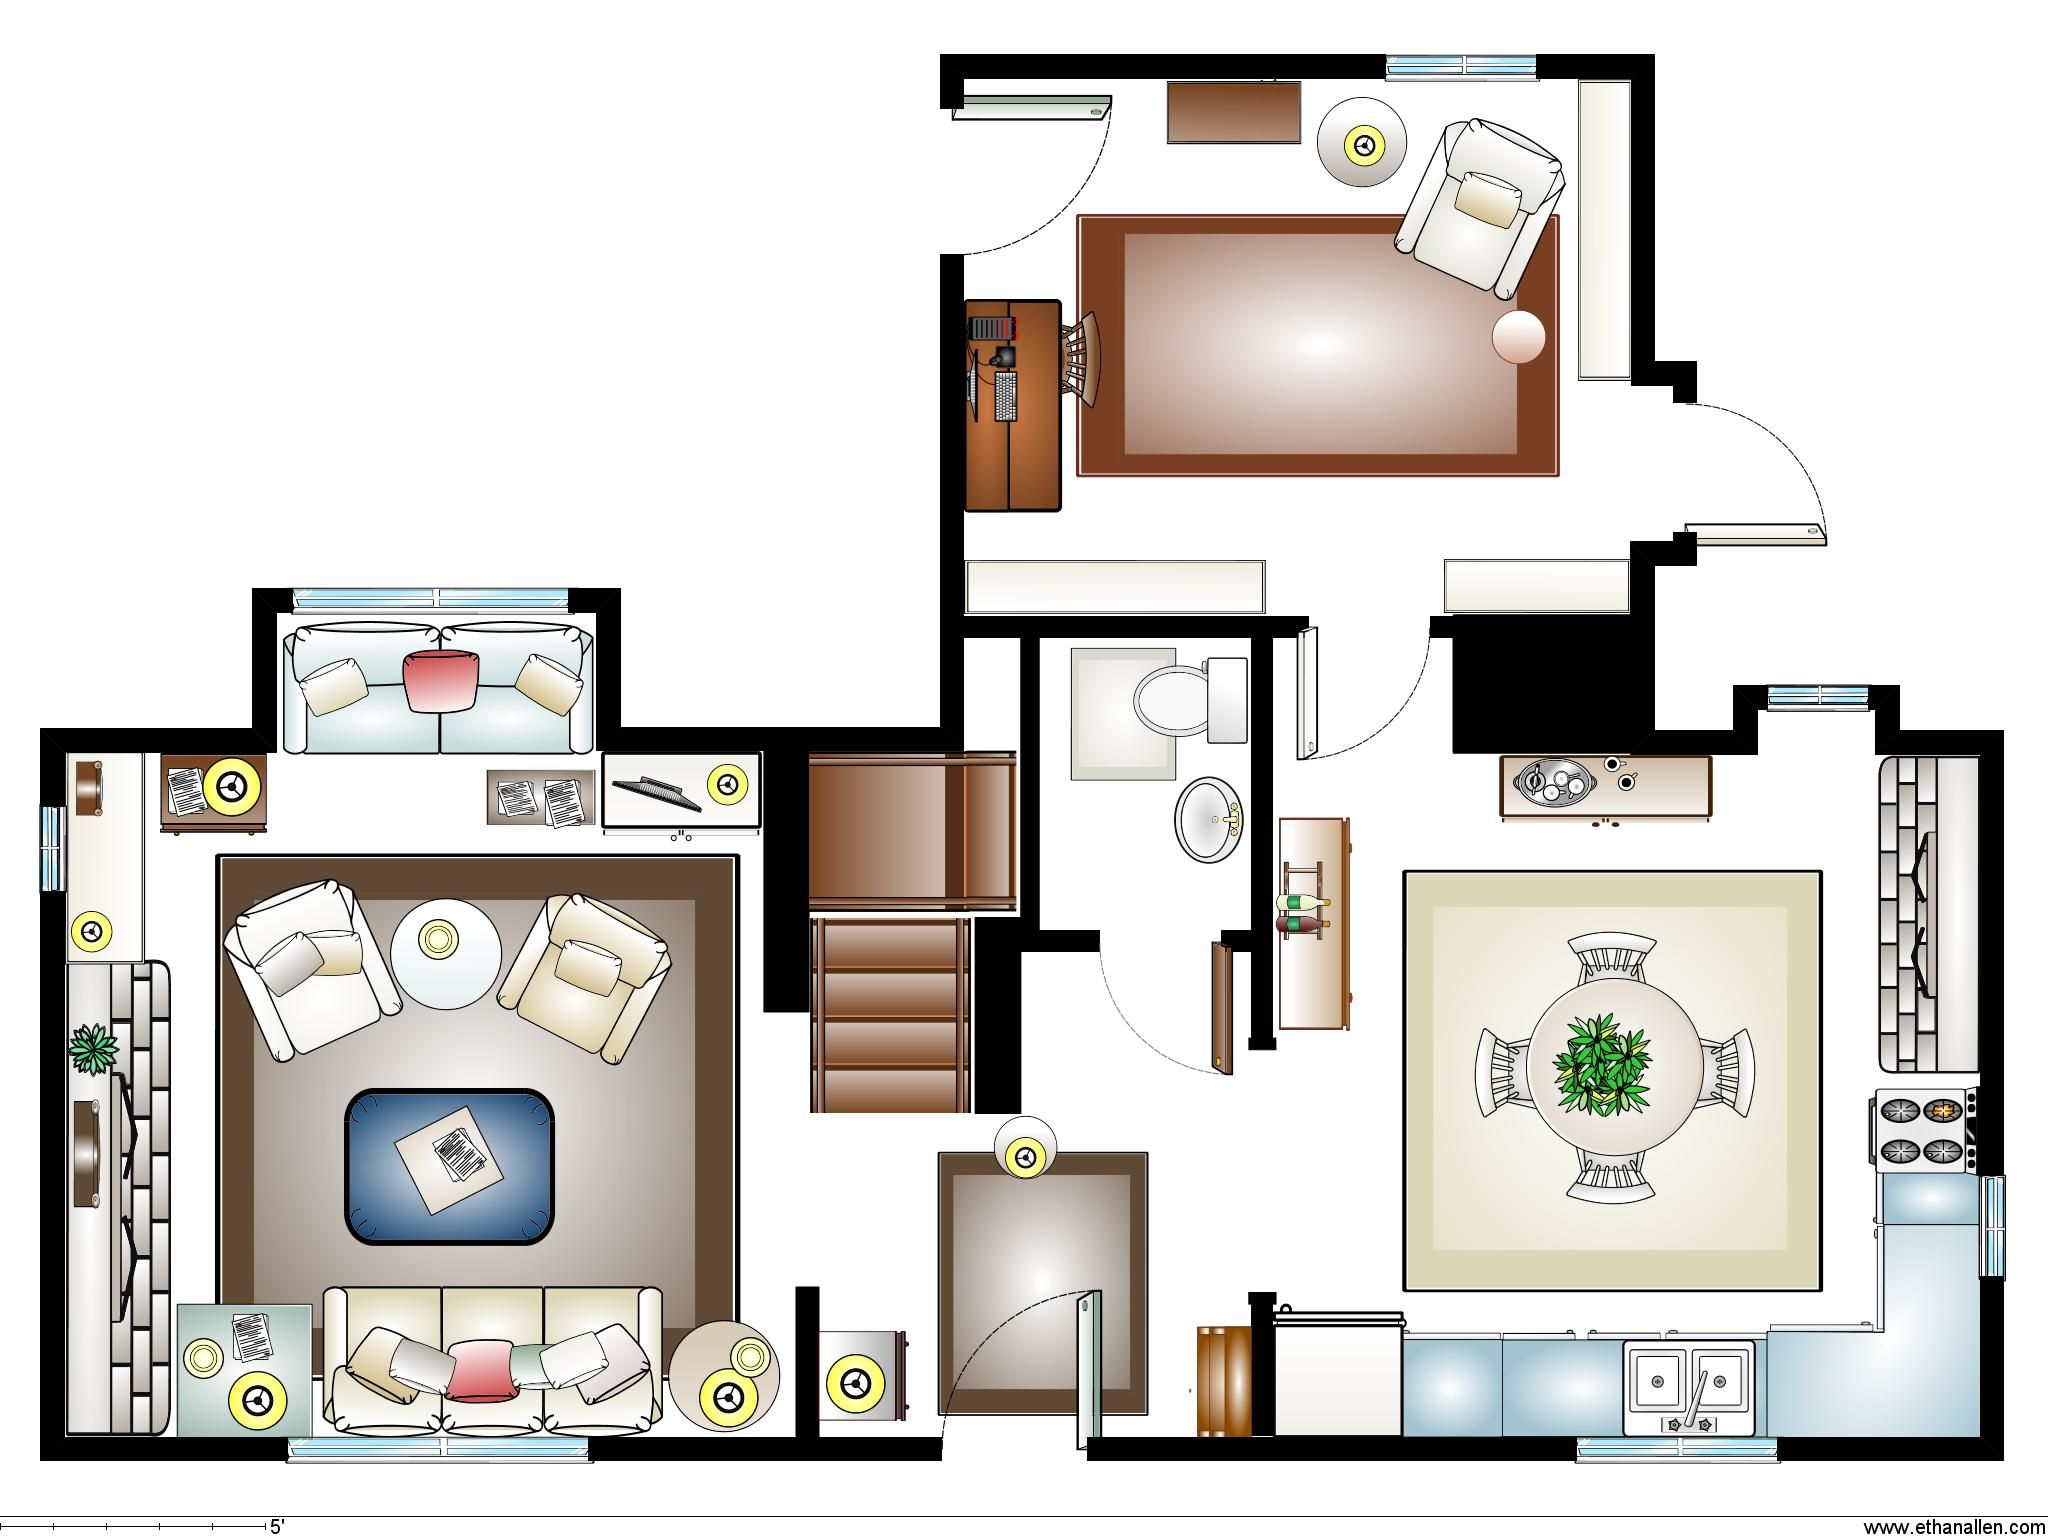 floor plan for Rosehill cottage in the movie \